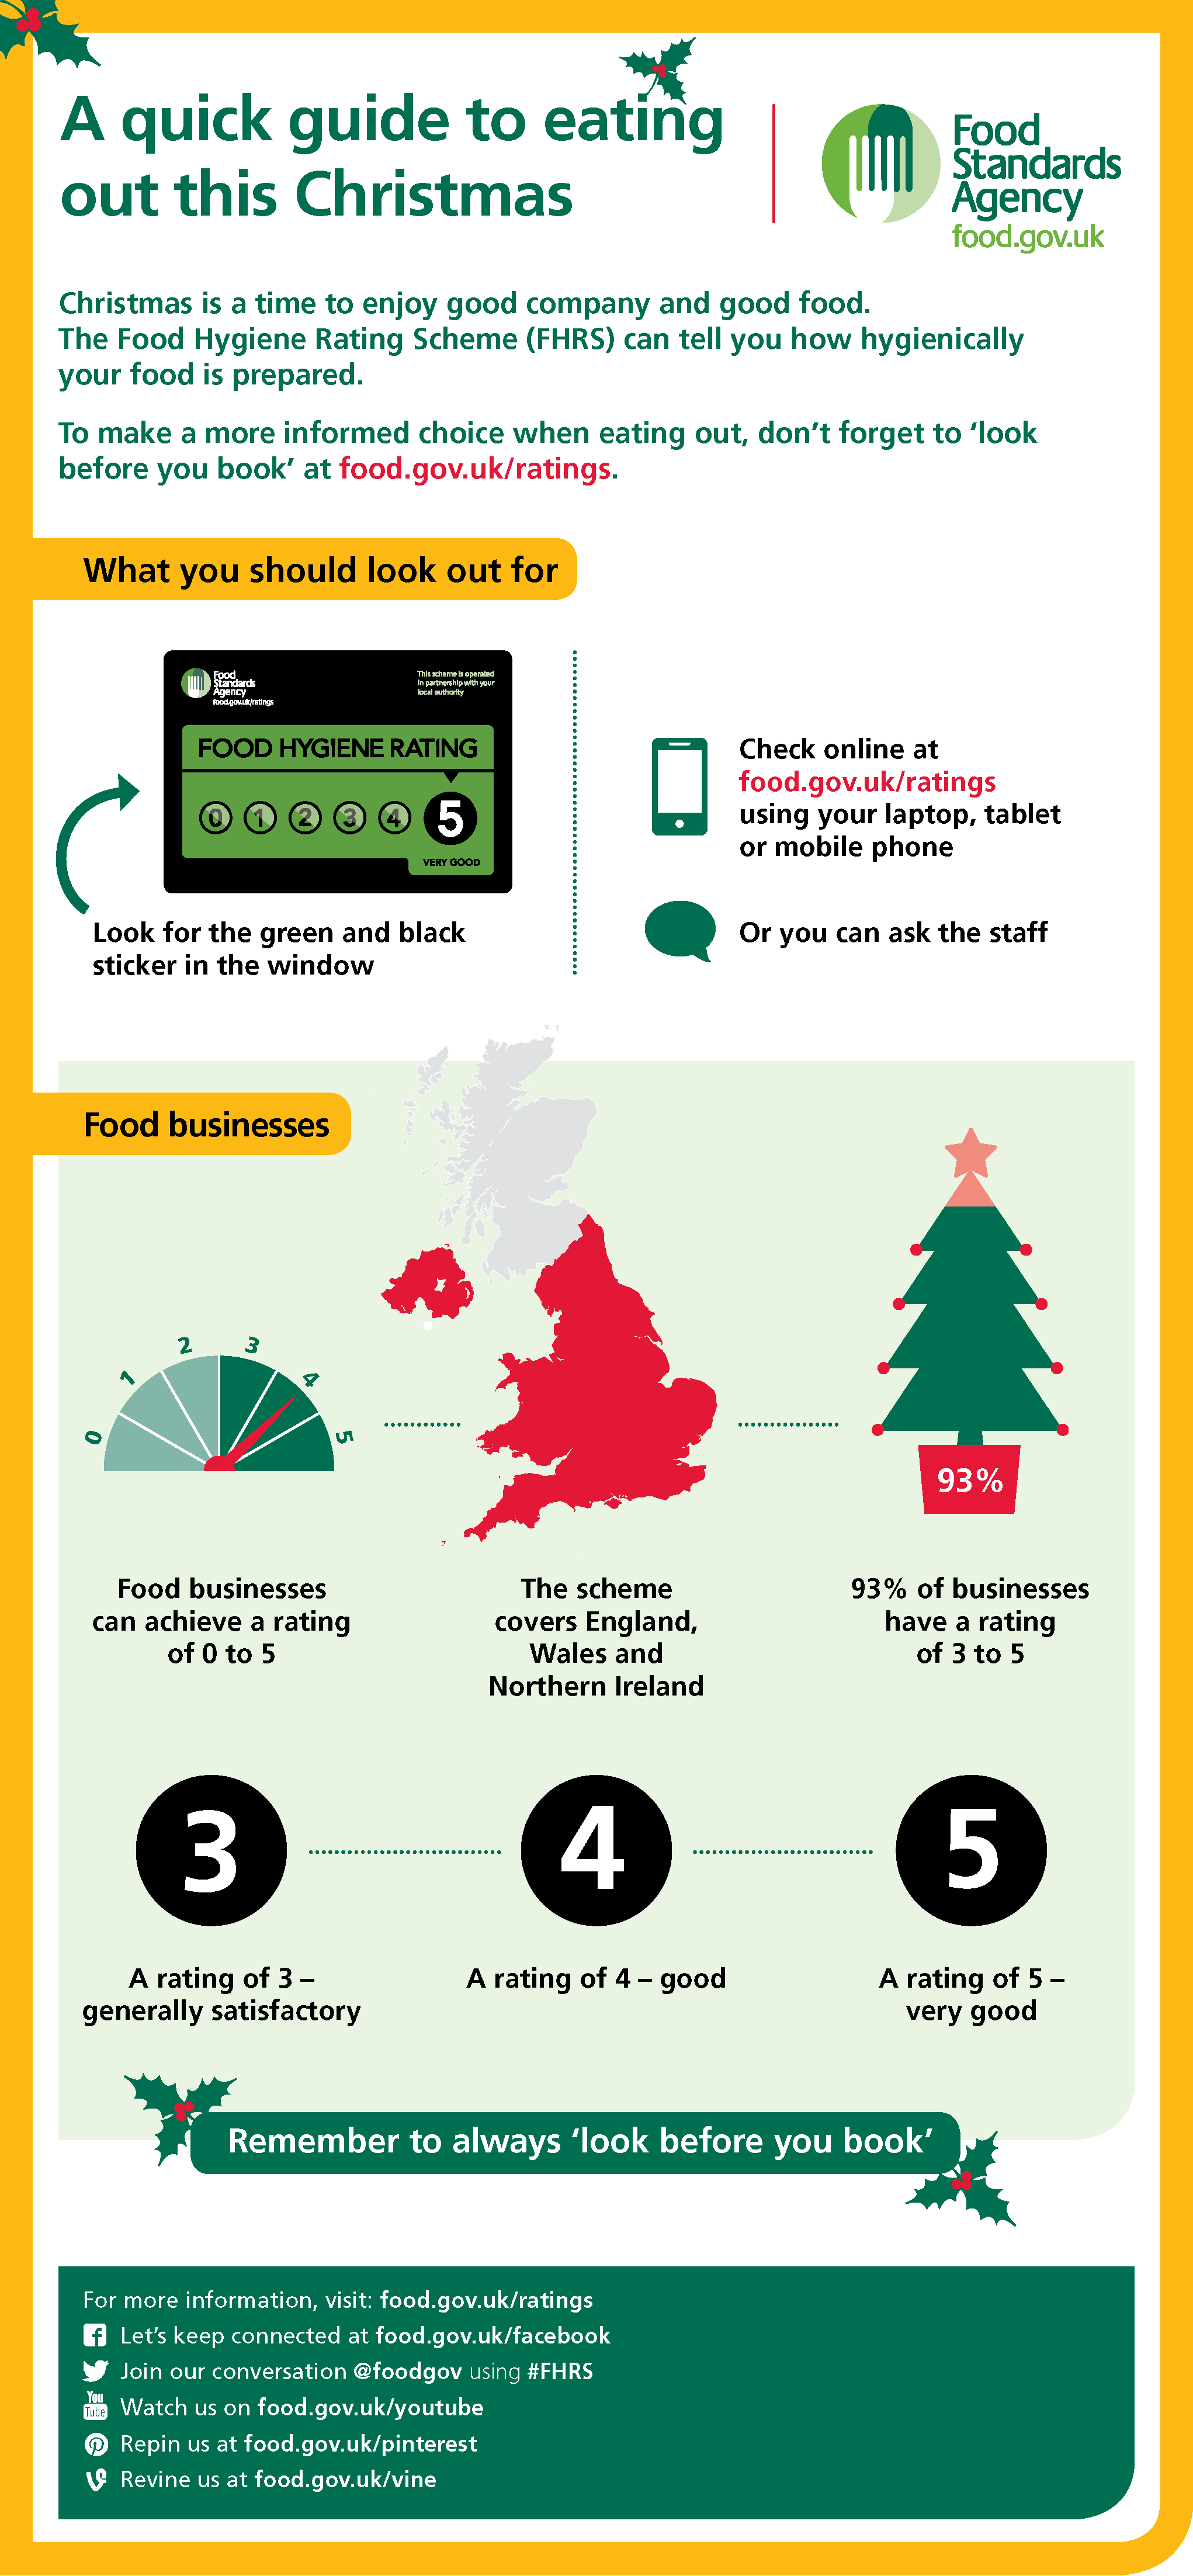 Part 1 of a quick guide to eating out this Christmas. This